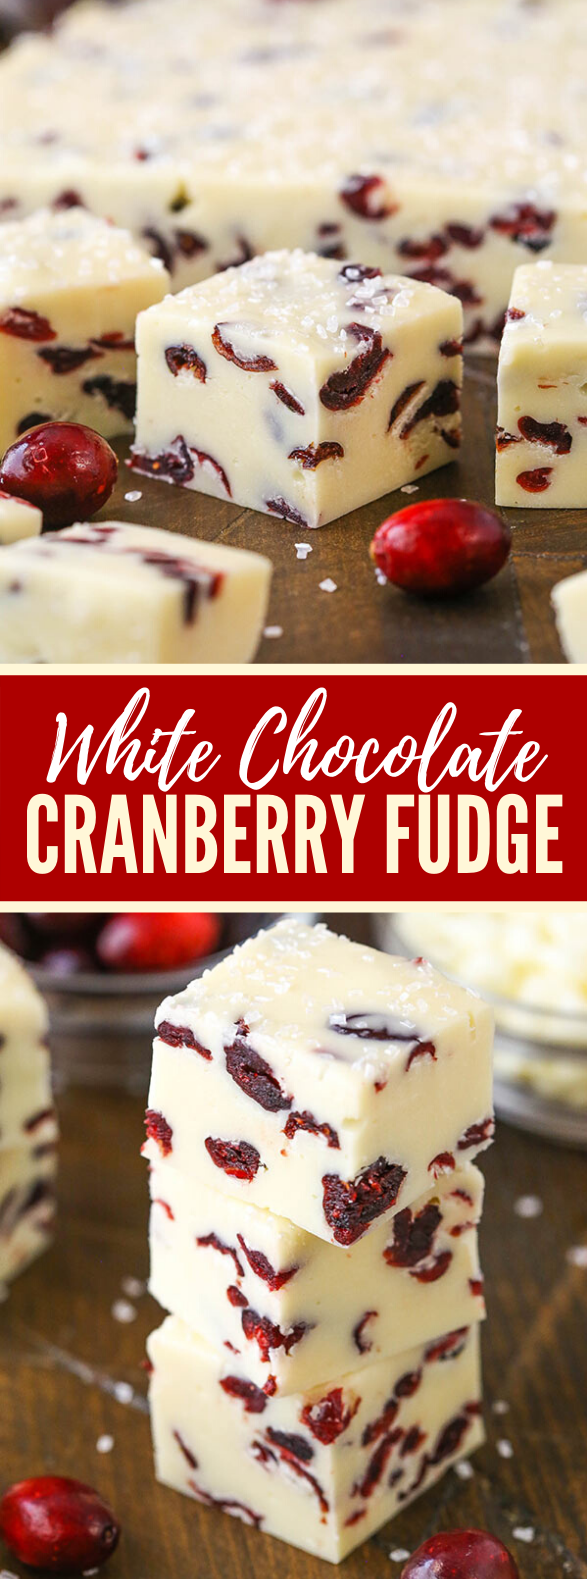 EASY WHITE CHOCOLATE CRANBERRY FUDGE #desserts #christmas